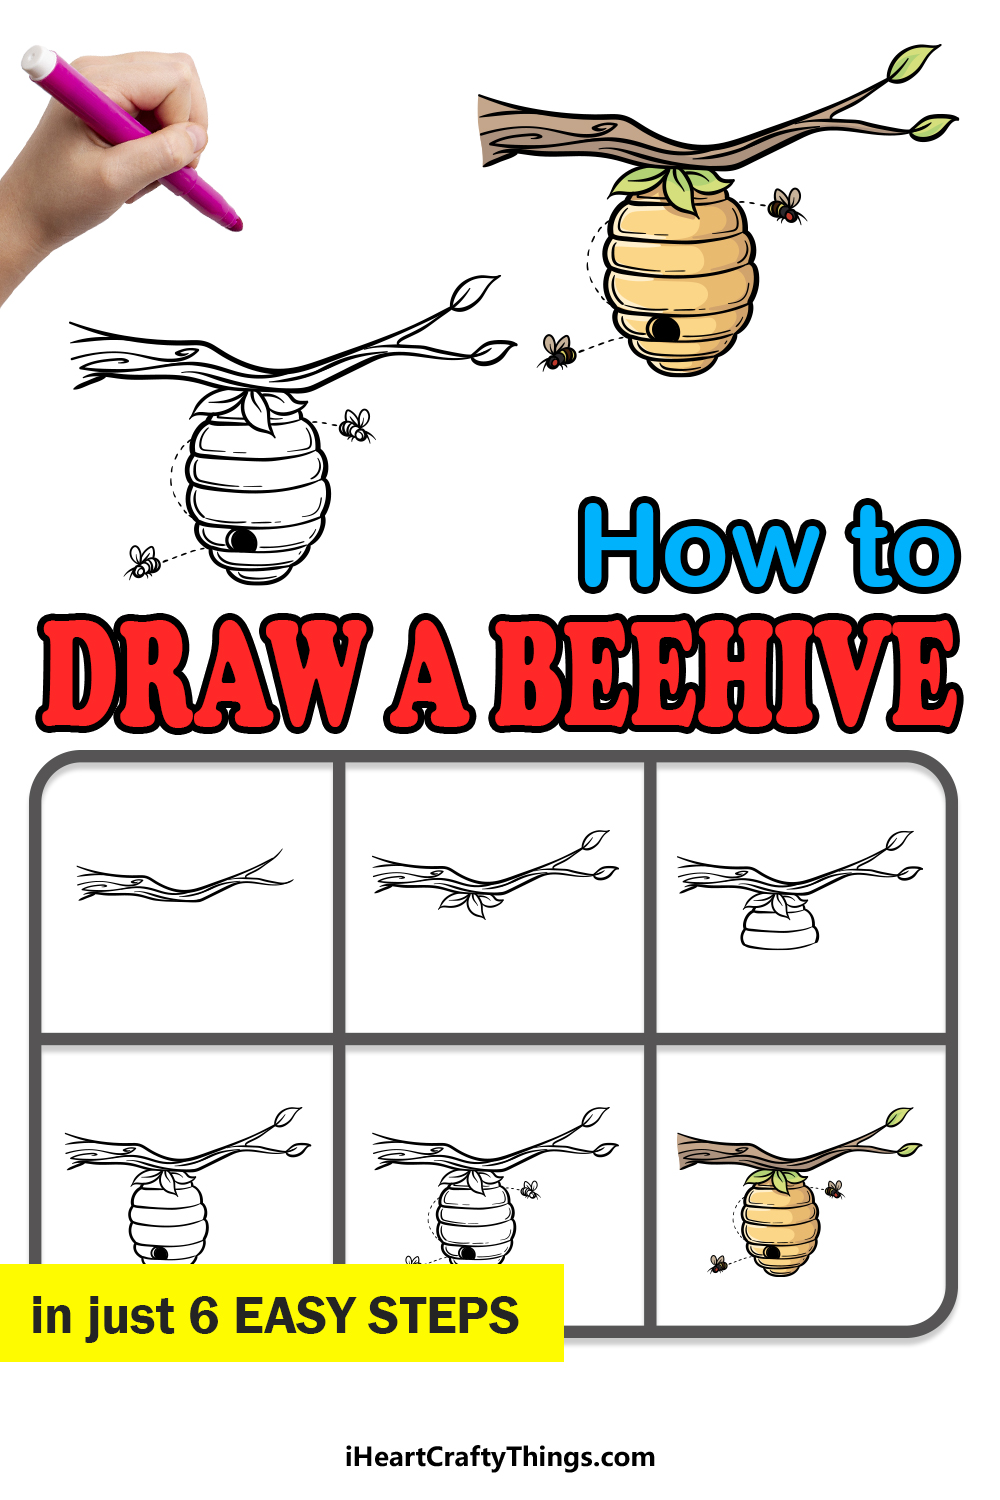 how to draw beehive in 6 easy steps